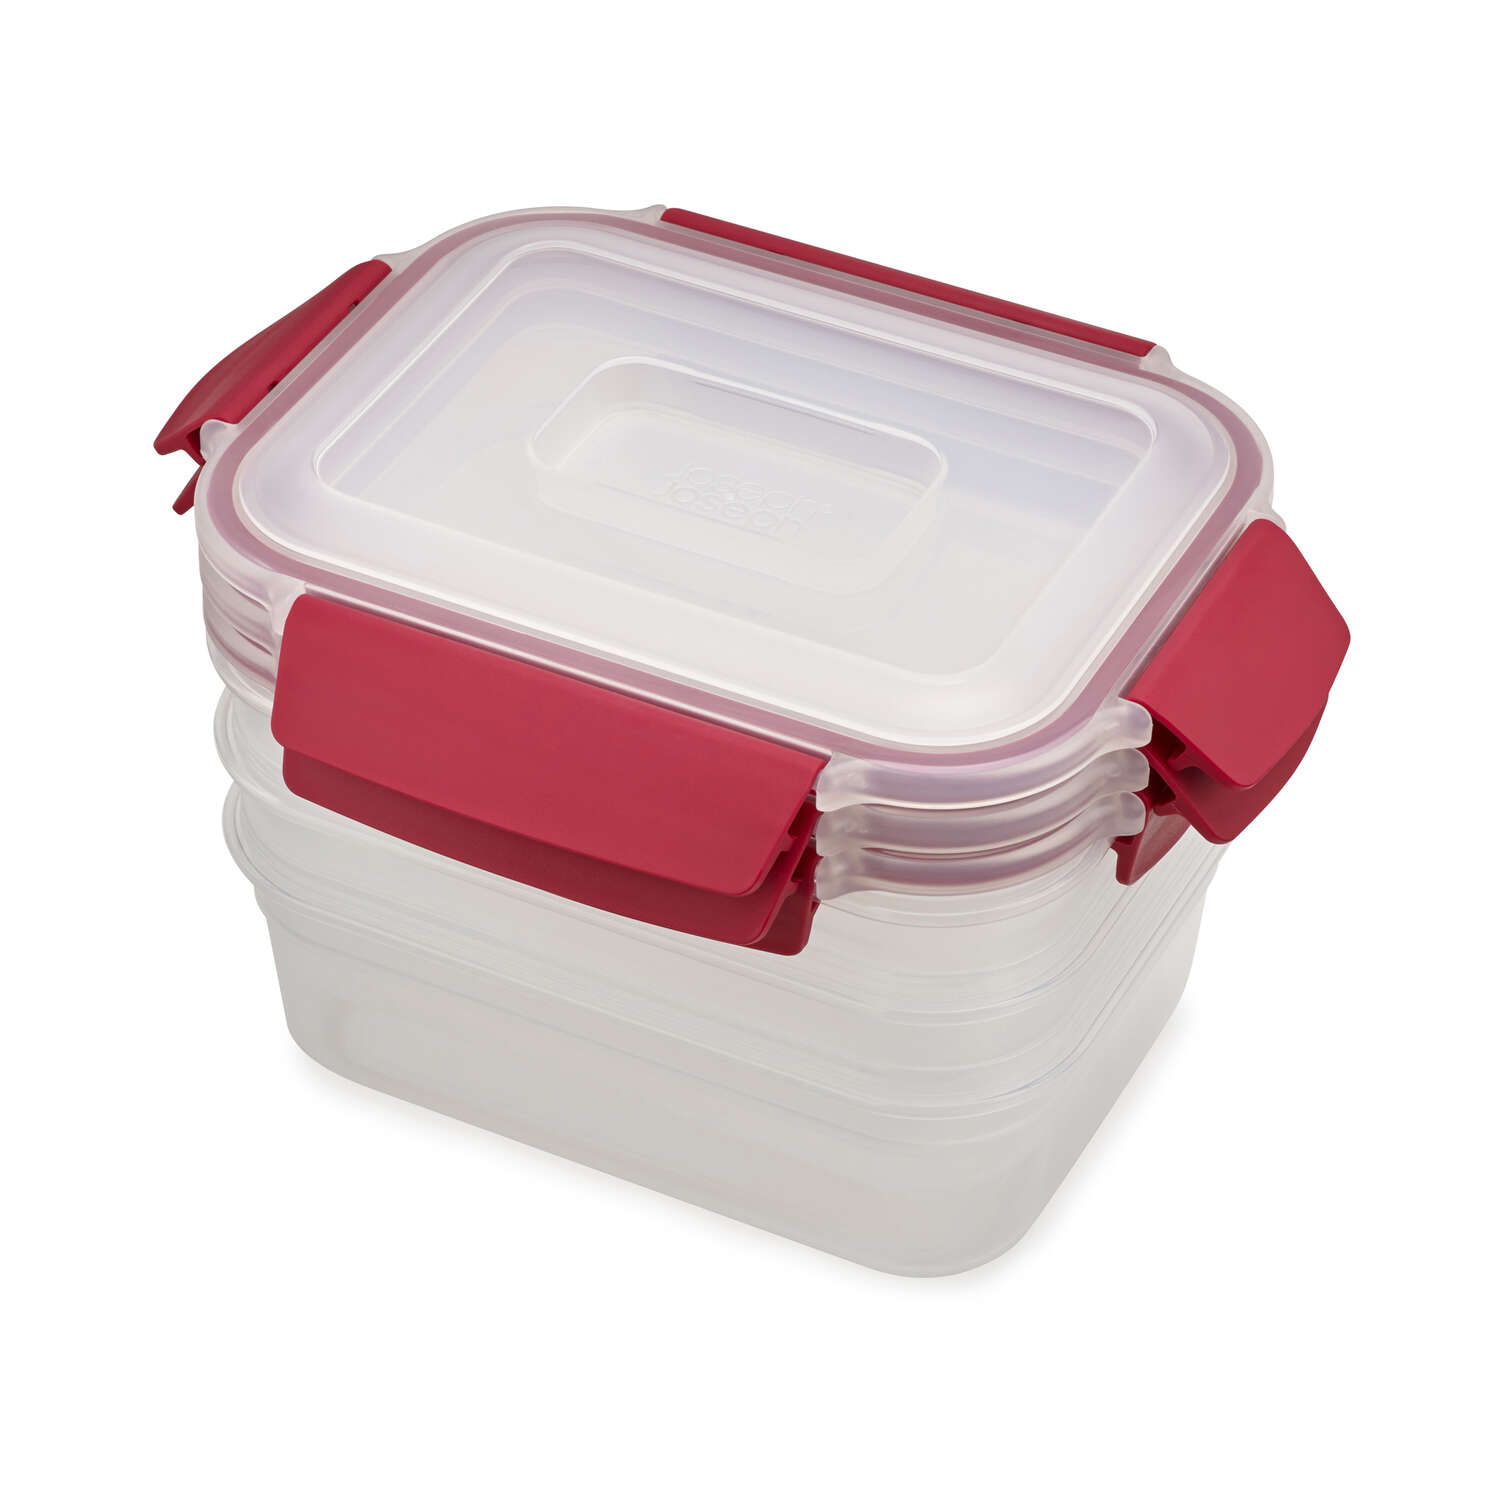 Joseph Joseph  Nest  37 oz. Food Storage Container Set  3 pk Clear